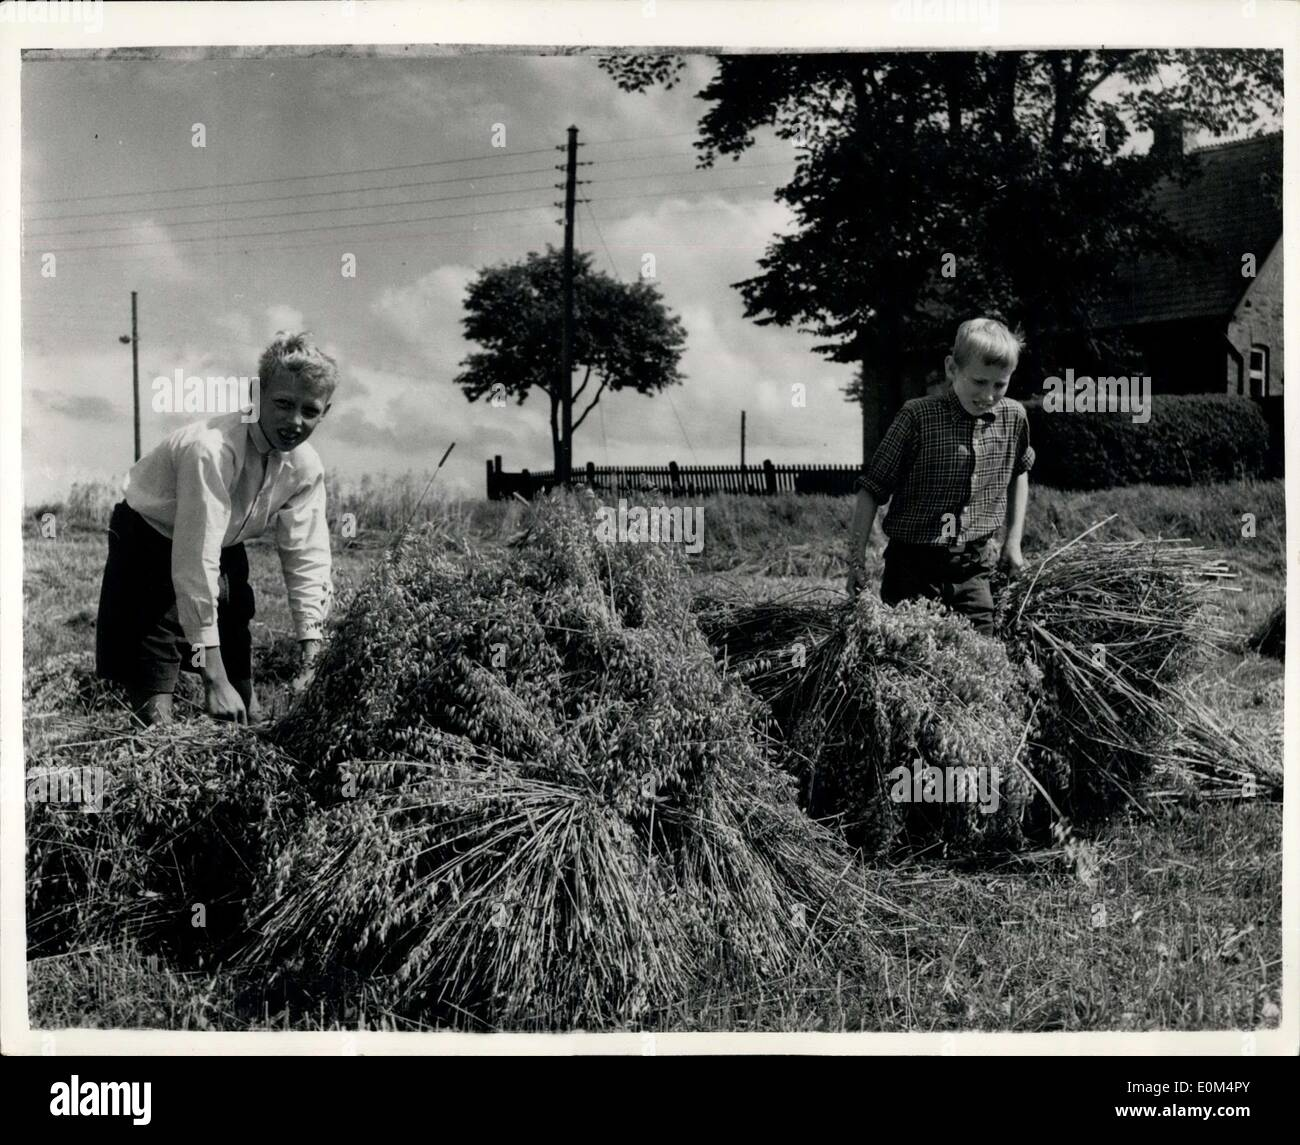 Aug. 07, 1953 - Danish Princes give a hand with the harvest: Prince Inglof and Prince Christian the two sons of Prince Knud brother of King Frederick IX of Denmark are on holiday on the farm of Mr. Sode, which adjoins the Royal Estate of Freiensborg Castle, North Sealand. During the holiday they are putting themselves to go use by helping with the harvest. Photo shows Prince Ingolf (left) and Prince Christian helping with the harvest. - Stock Image